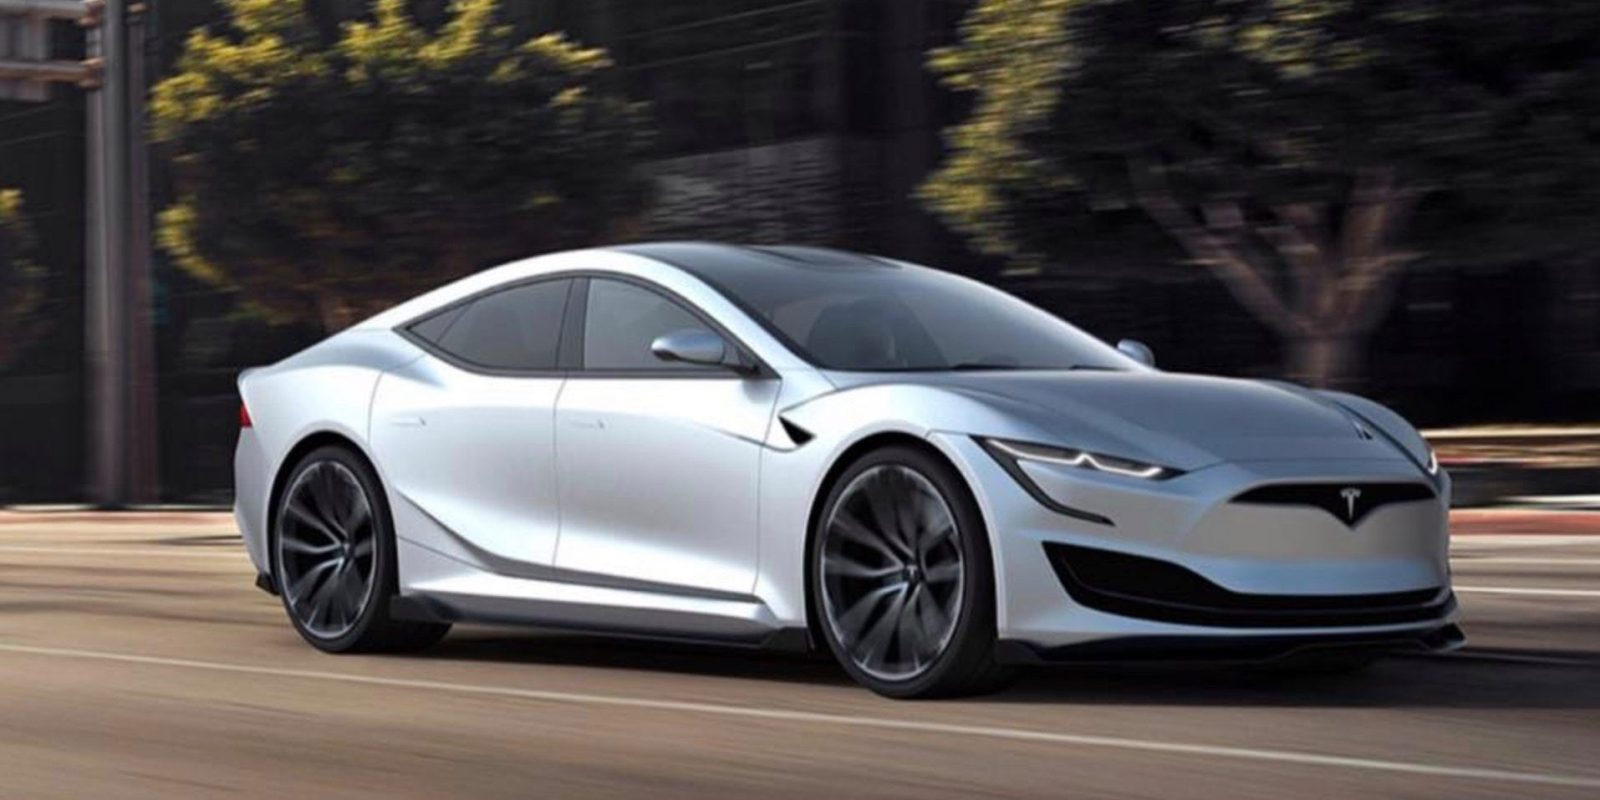 What if Tesla doesn't refresh the Model S or X?